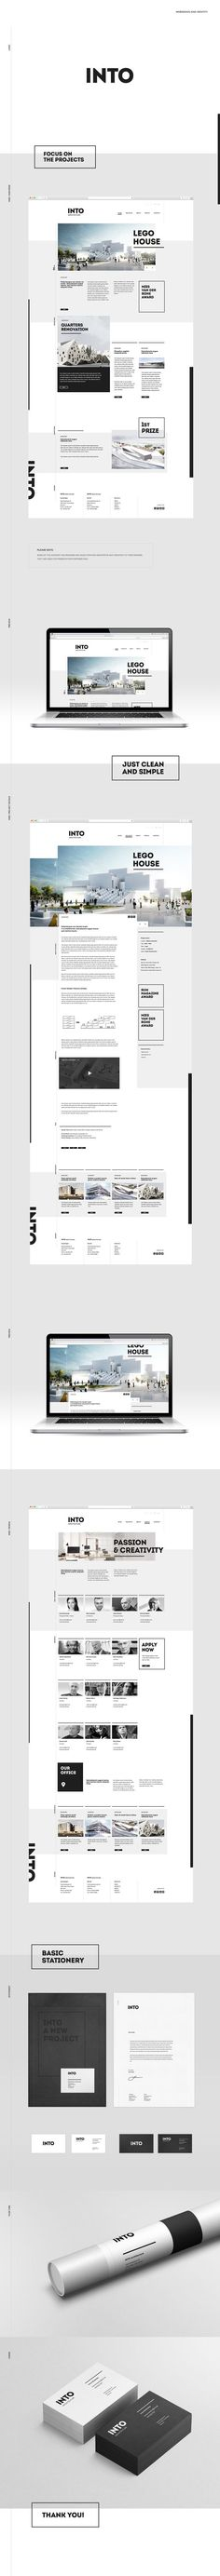 webdesign and branding concept for architecture office.INTO Architecture Irena Nowacka: www.behance.net/irenanowacka: